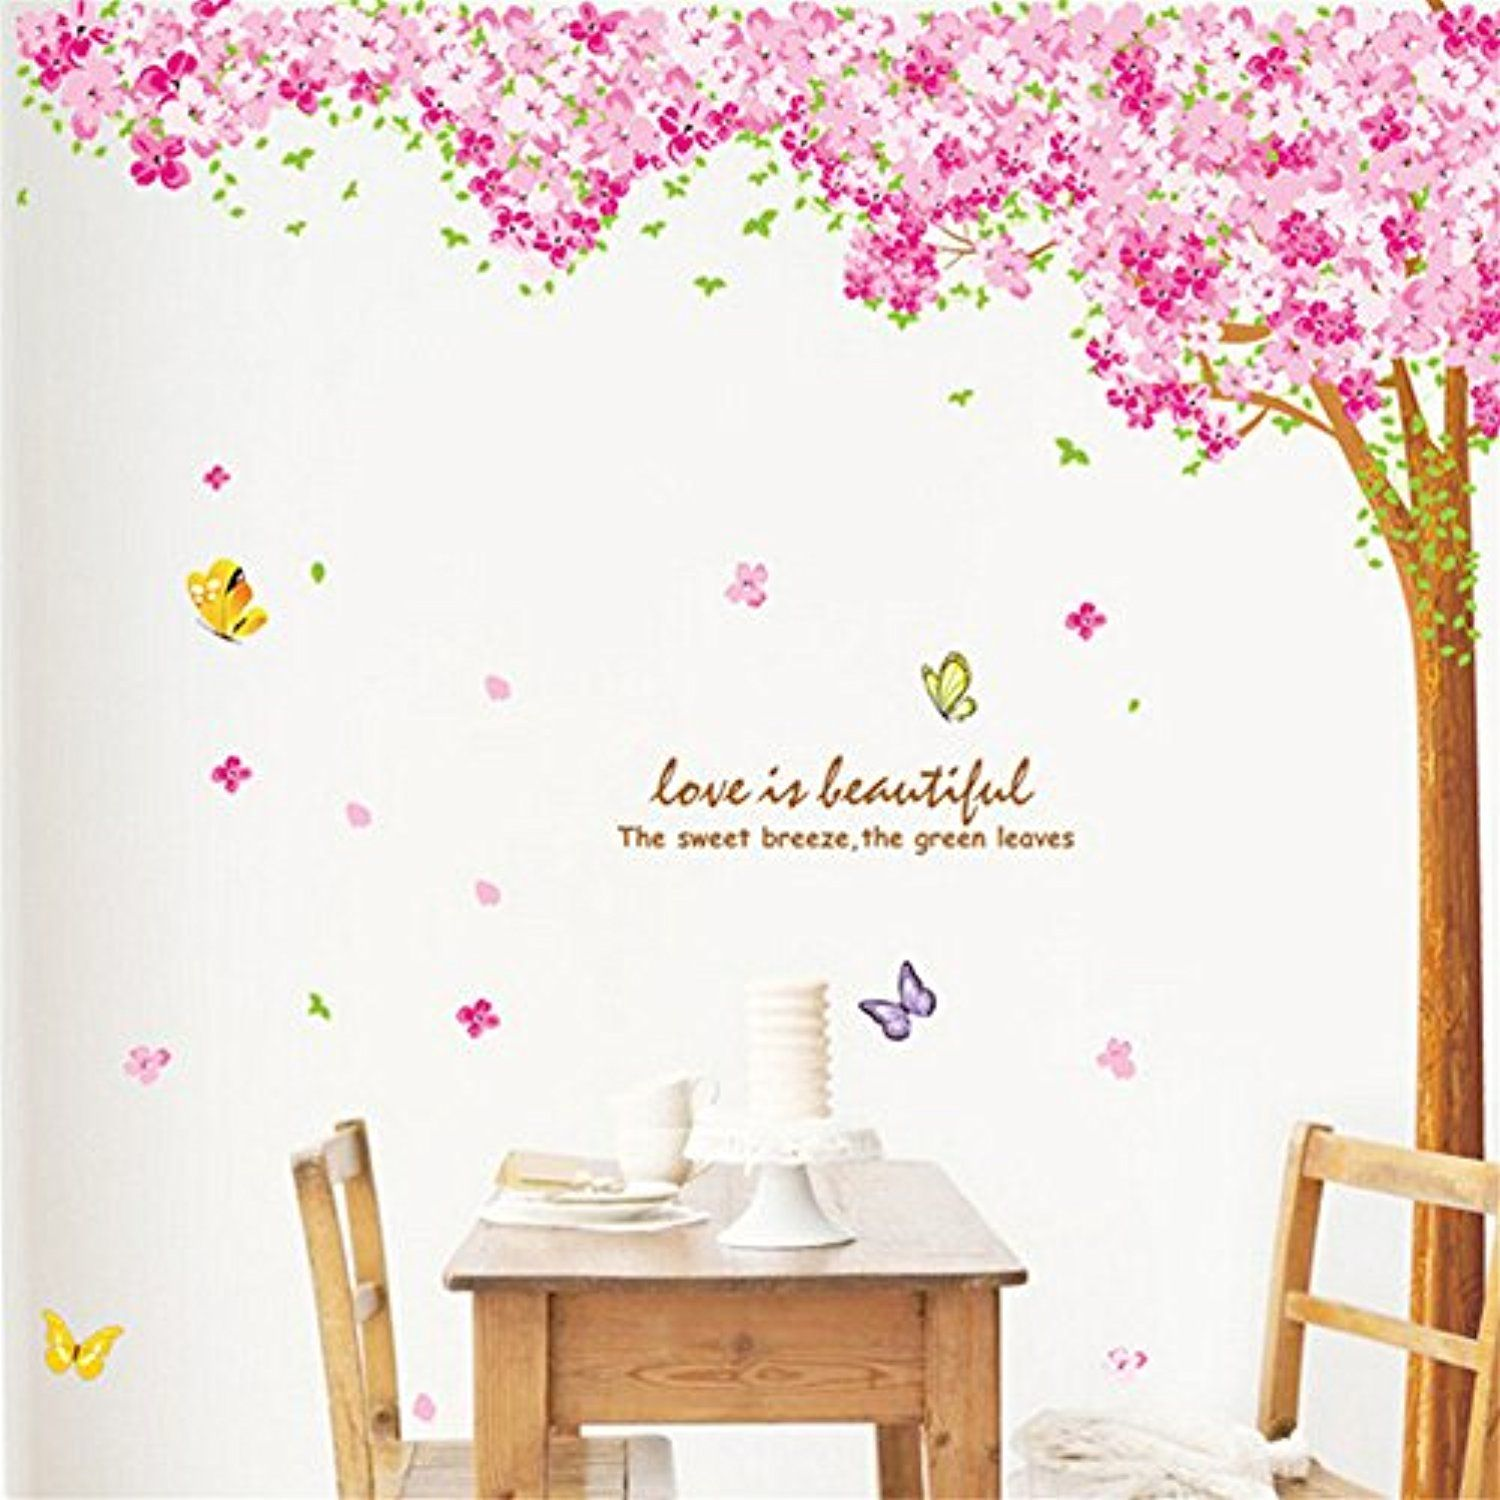 Chendongdong Huge Cherry Blossom Flower Tree Wall Decal Sticker Mural Home Decor Wallpaper Check O Flower Wall Decals Nursery Wall Decals Tree Wall Stickers